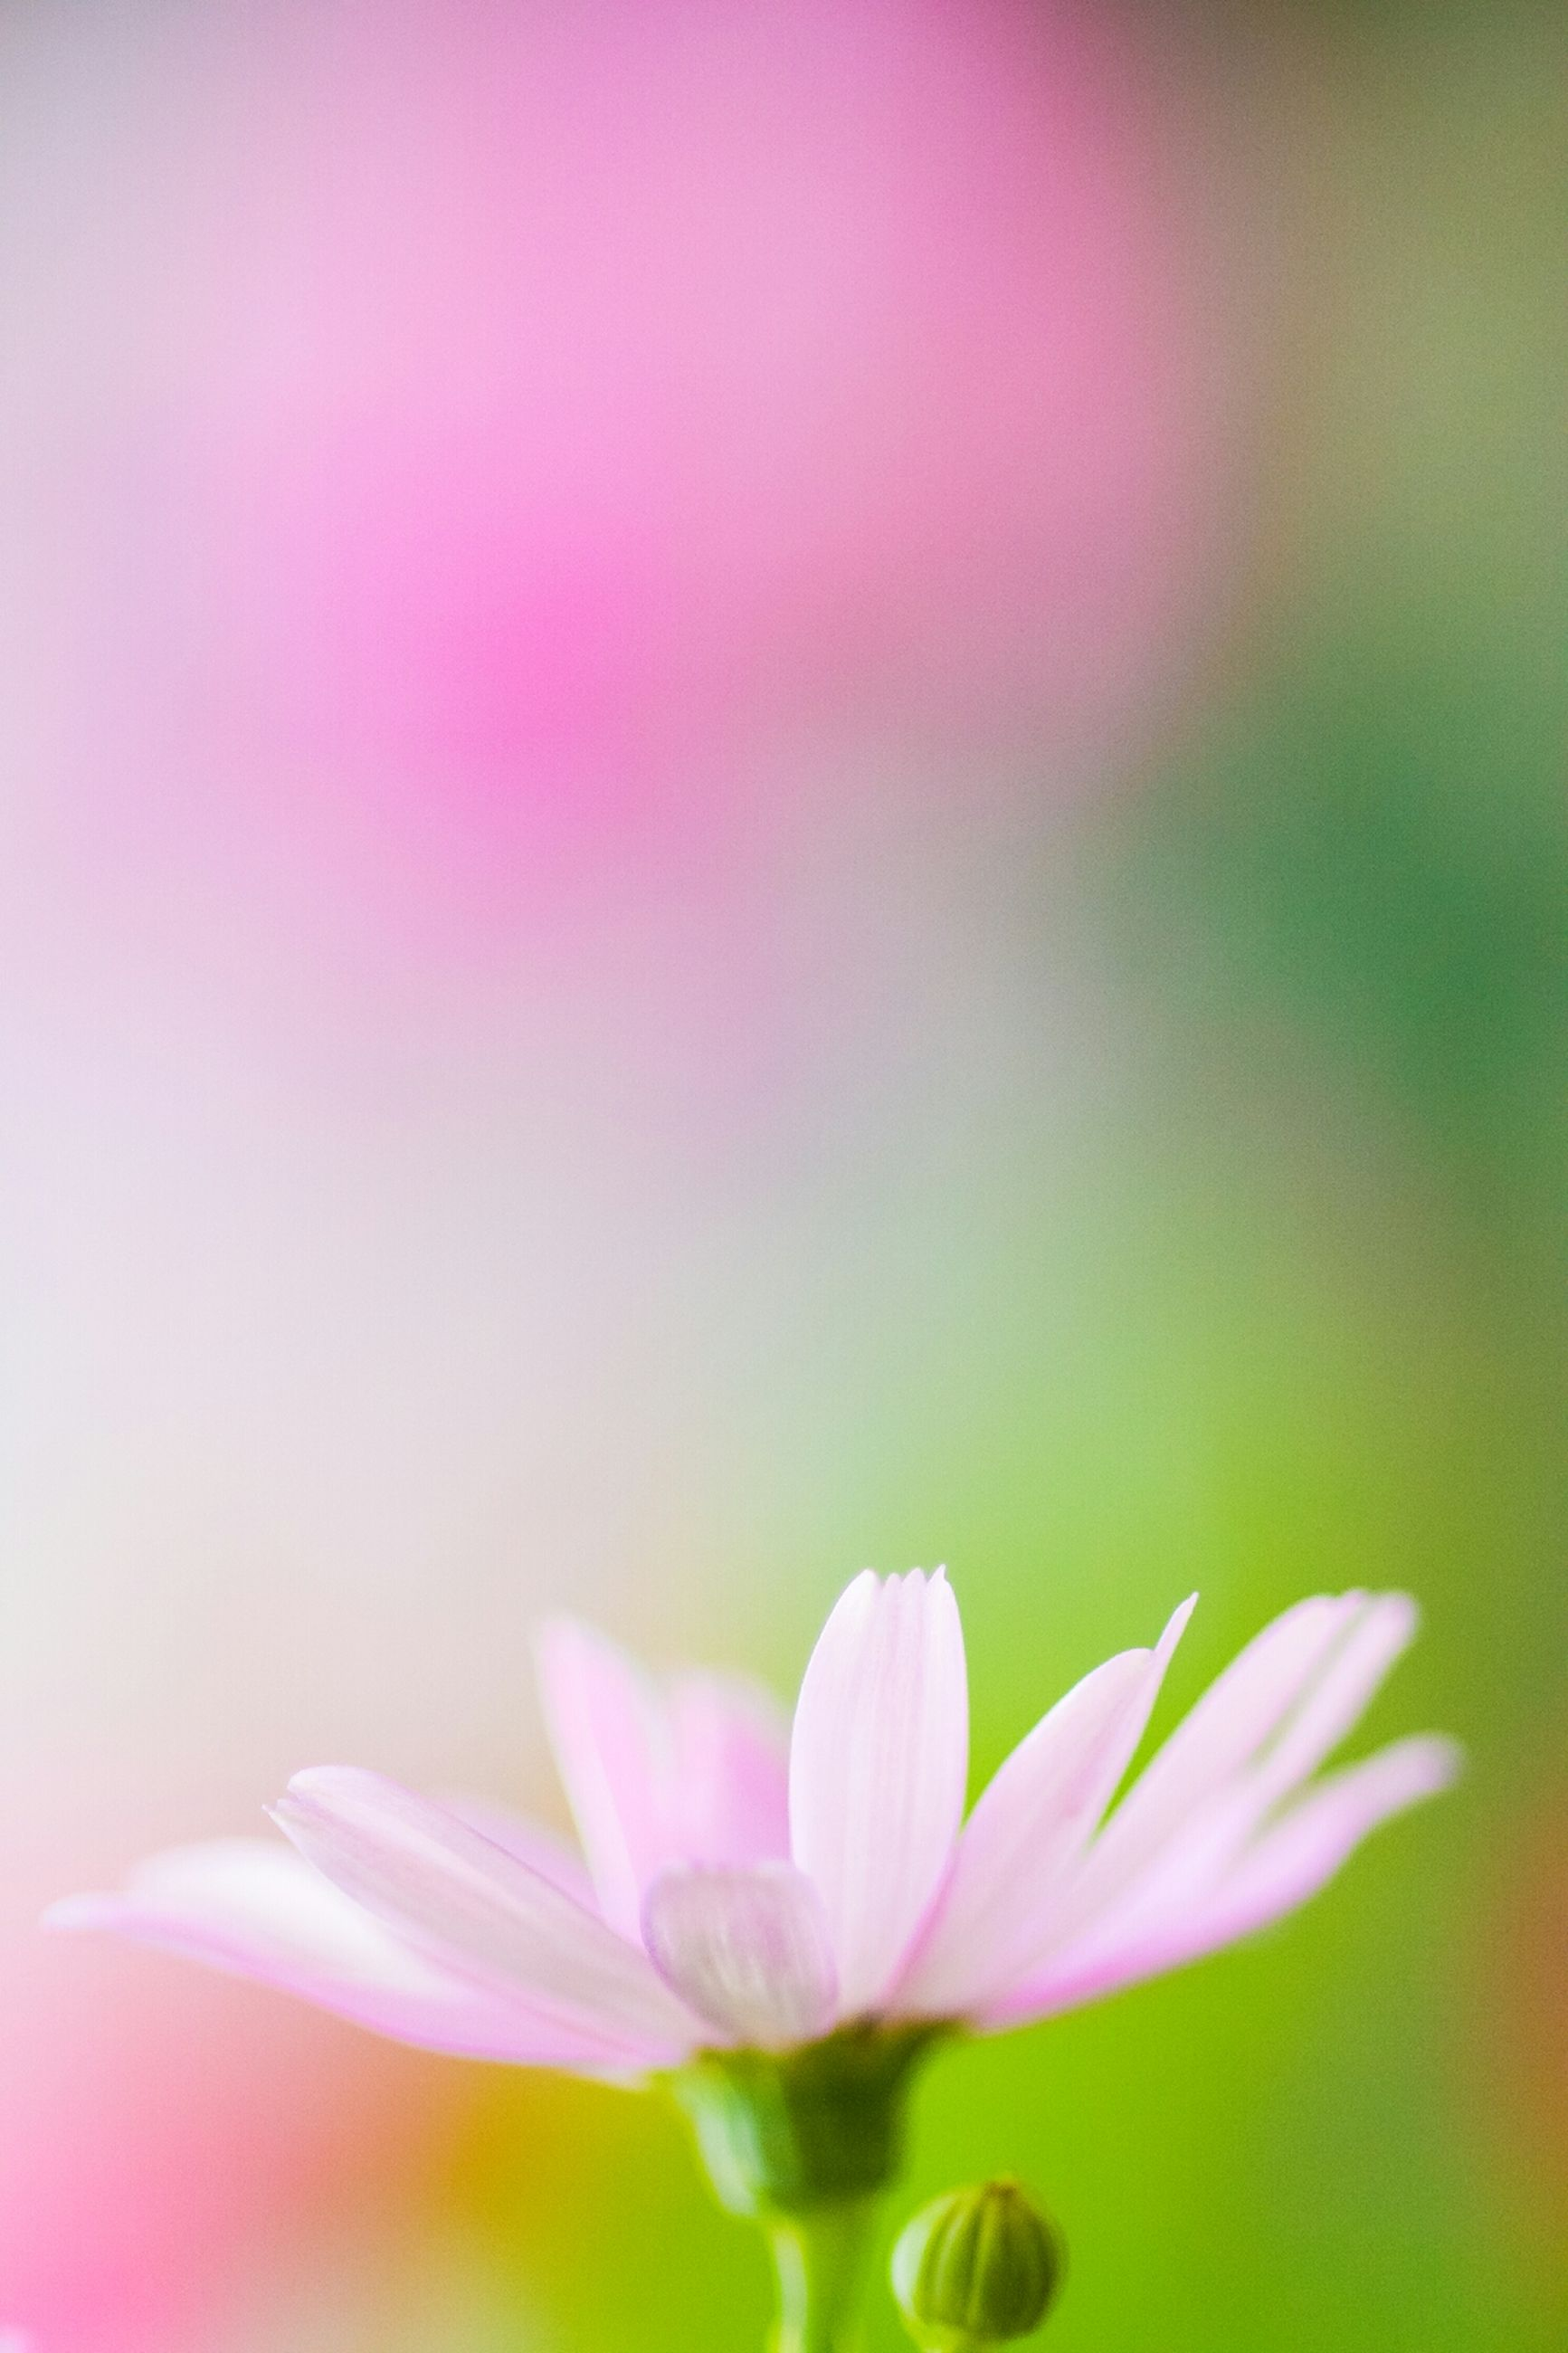 flower, petal, freshness, fragility, flower head, beauty in nature, growth, nature, blooming, close-up, plant, pink color, focus on foreground, selective focus, single flower, in bloom, stem, outdoors, no people, day